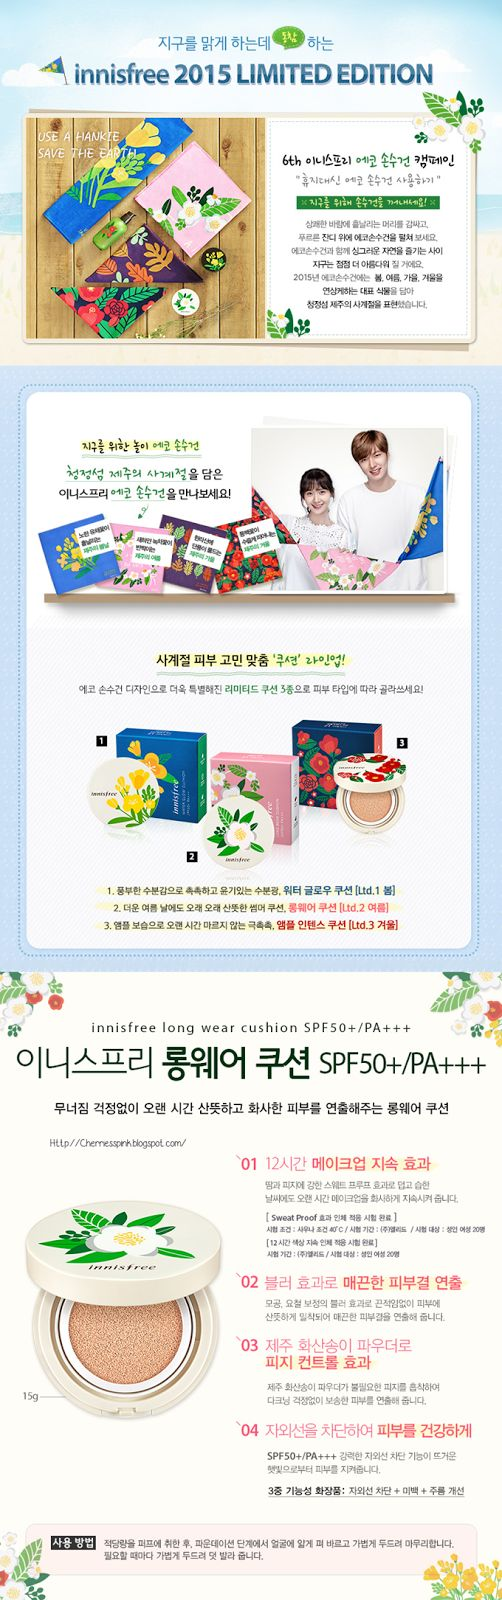 ♥ Cherriess Pink ♥: [New Release] INNISFREE SUMMER COLLECTION 2015